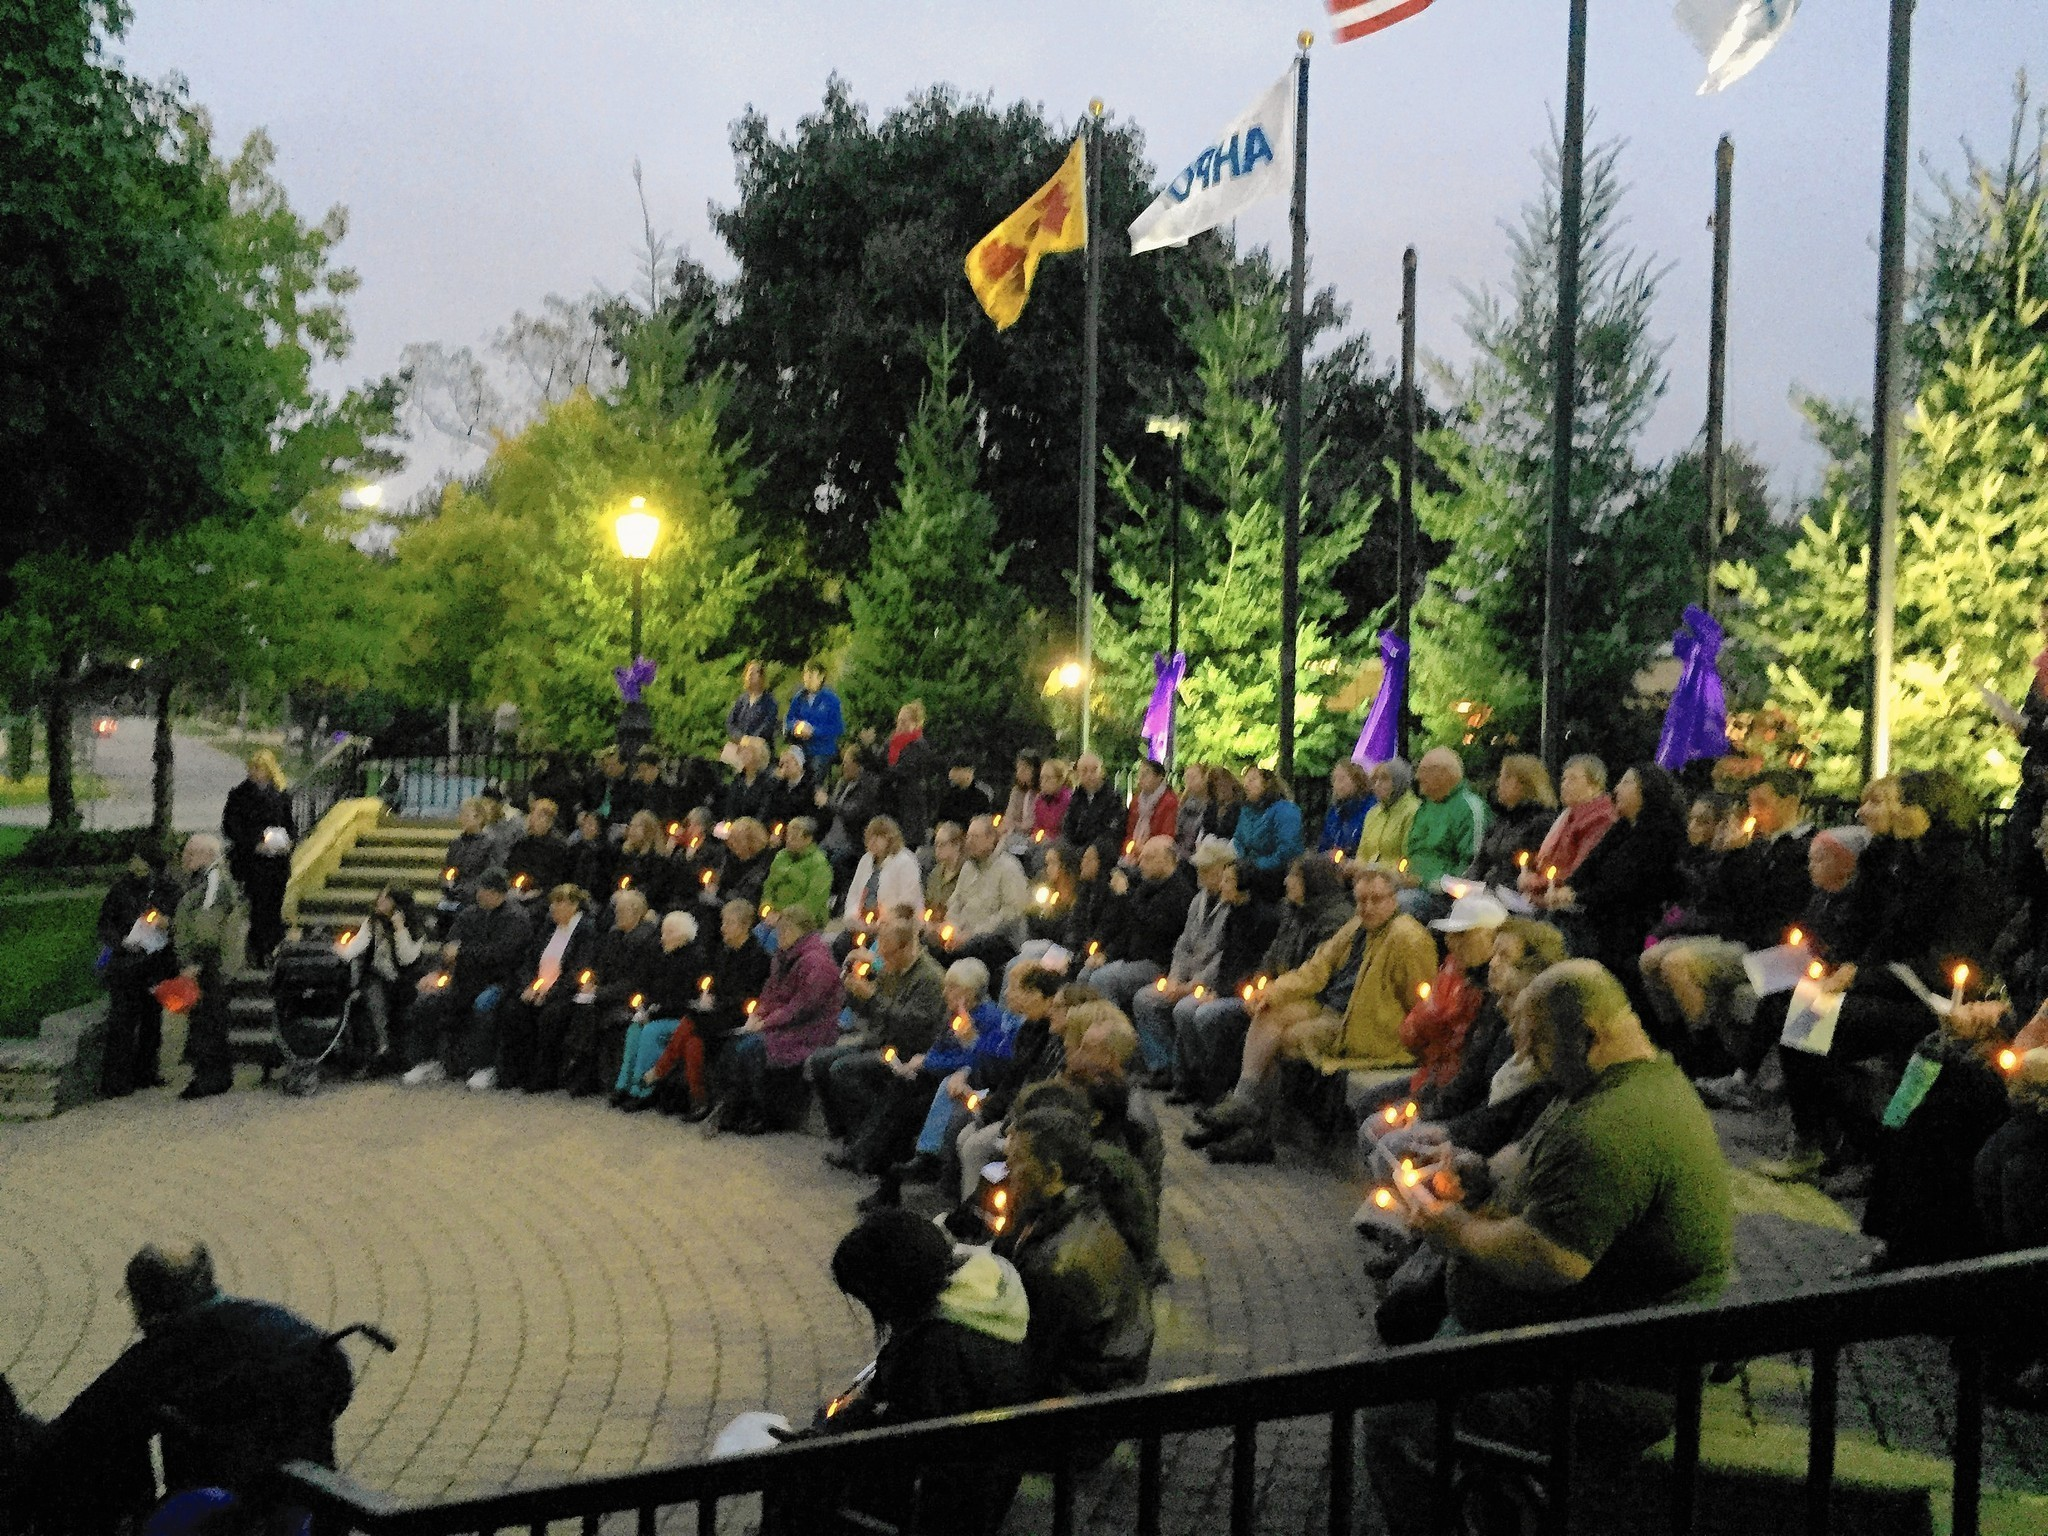 Candlelight Vigil Highlights Prevalence Of Domestic Violence Chicago Tribune